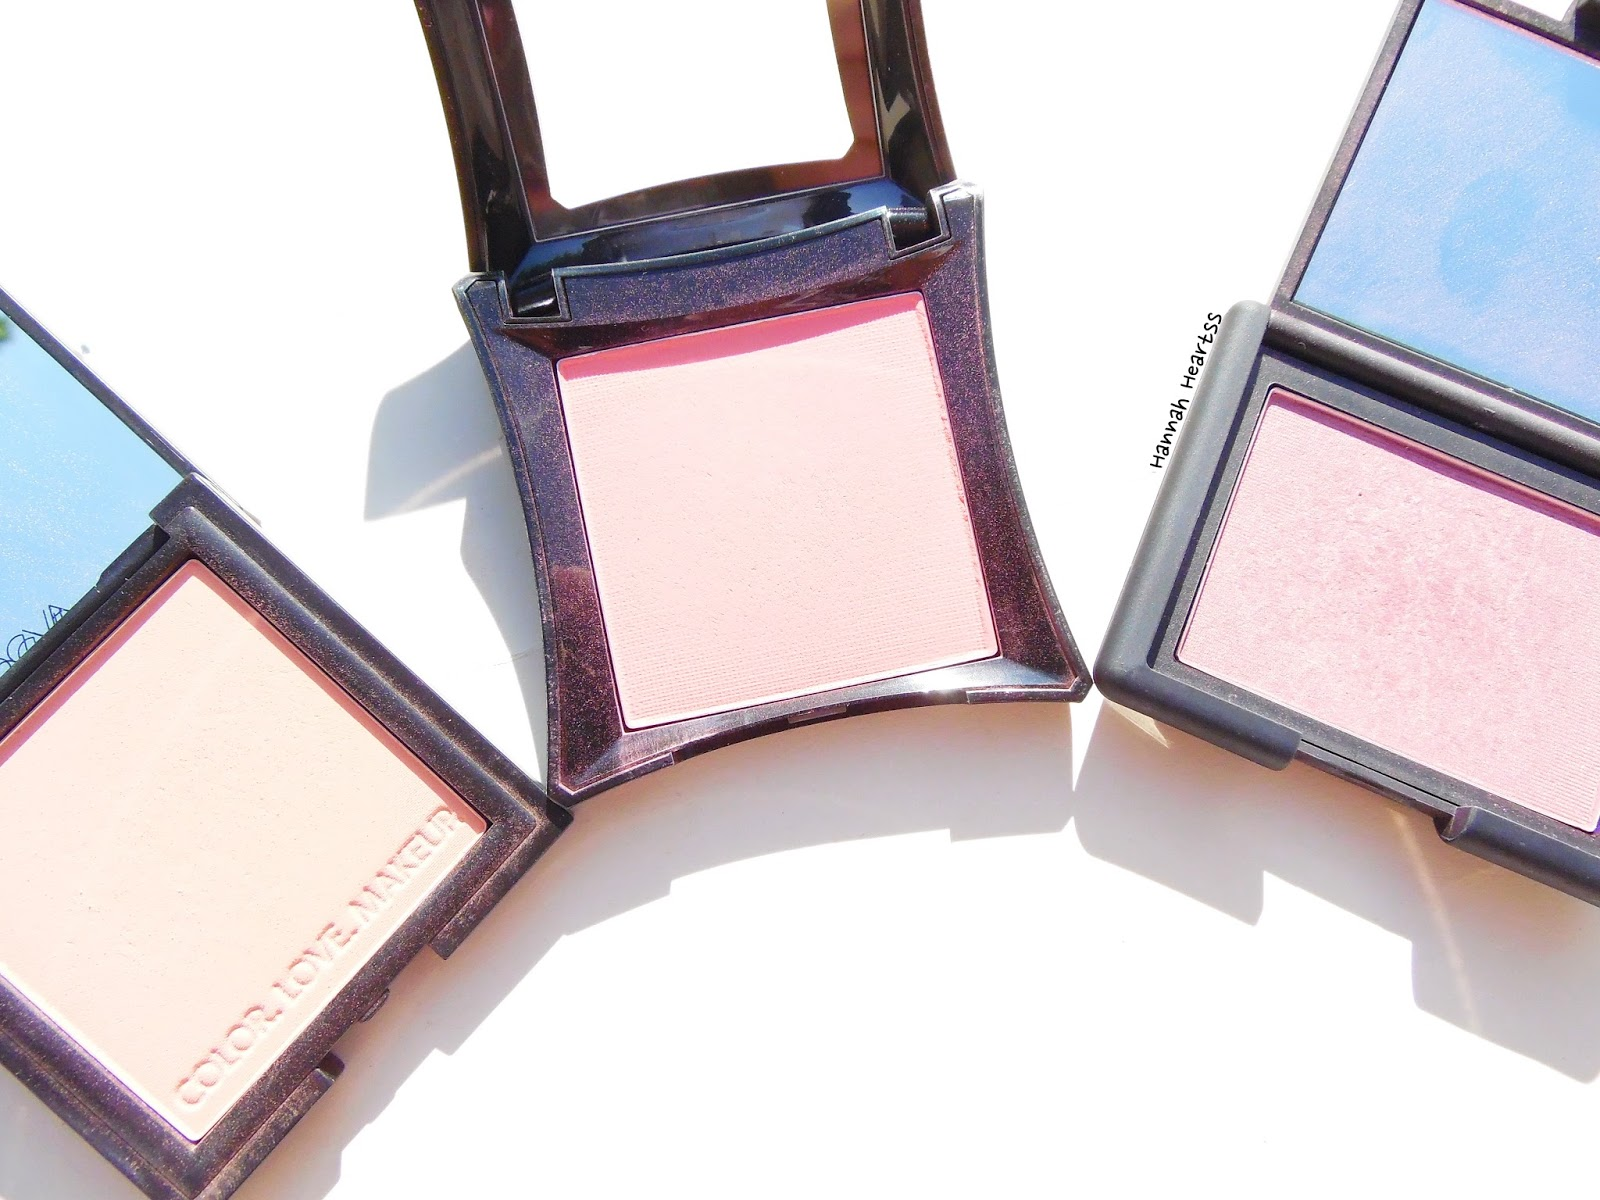 Top Three Blushes